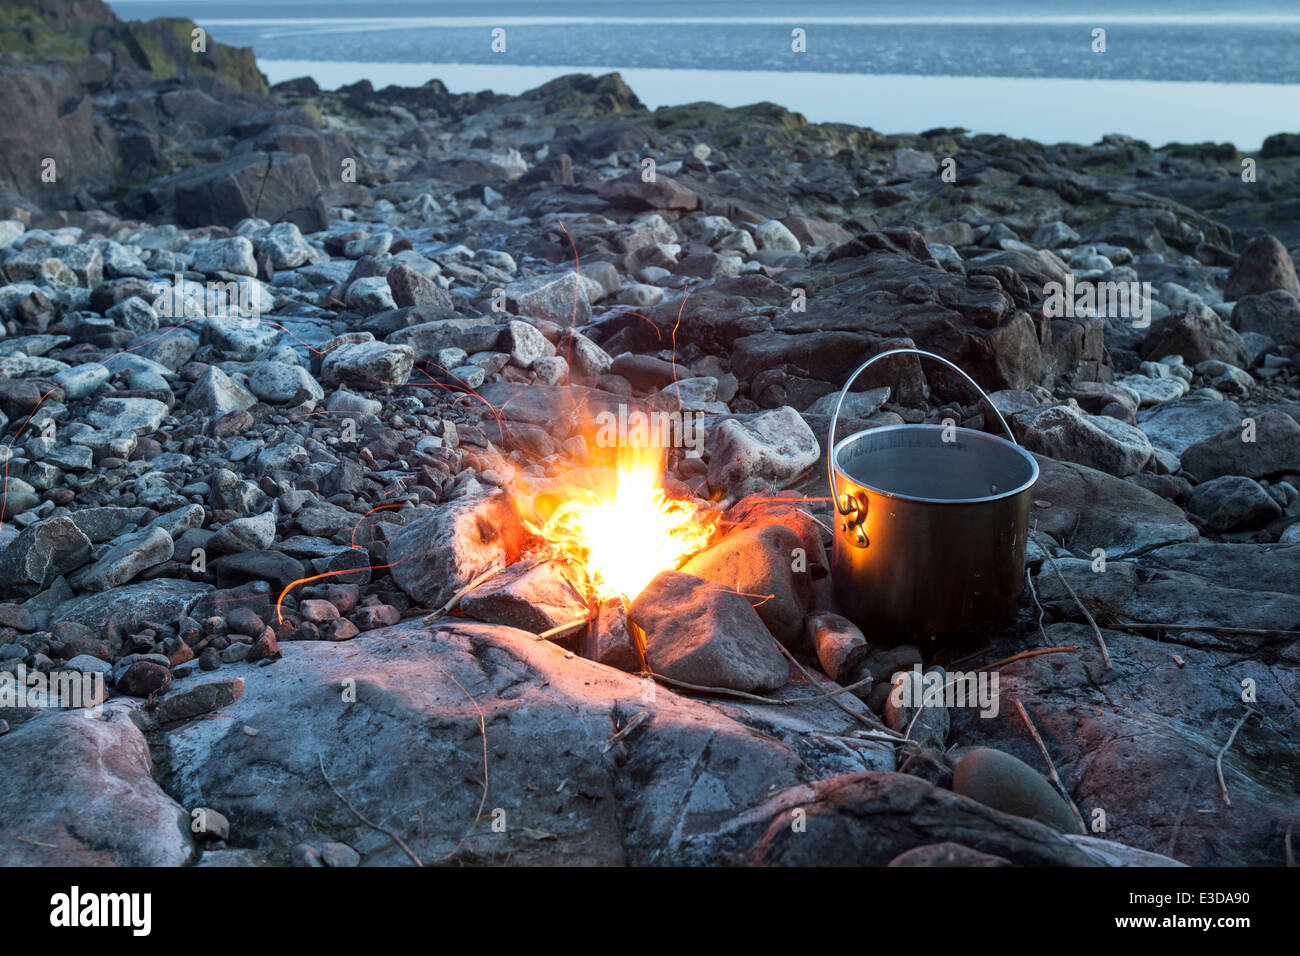 Fire with Cooking Pot on a Rocky Beach England UK - Stock Image